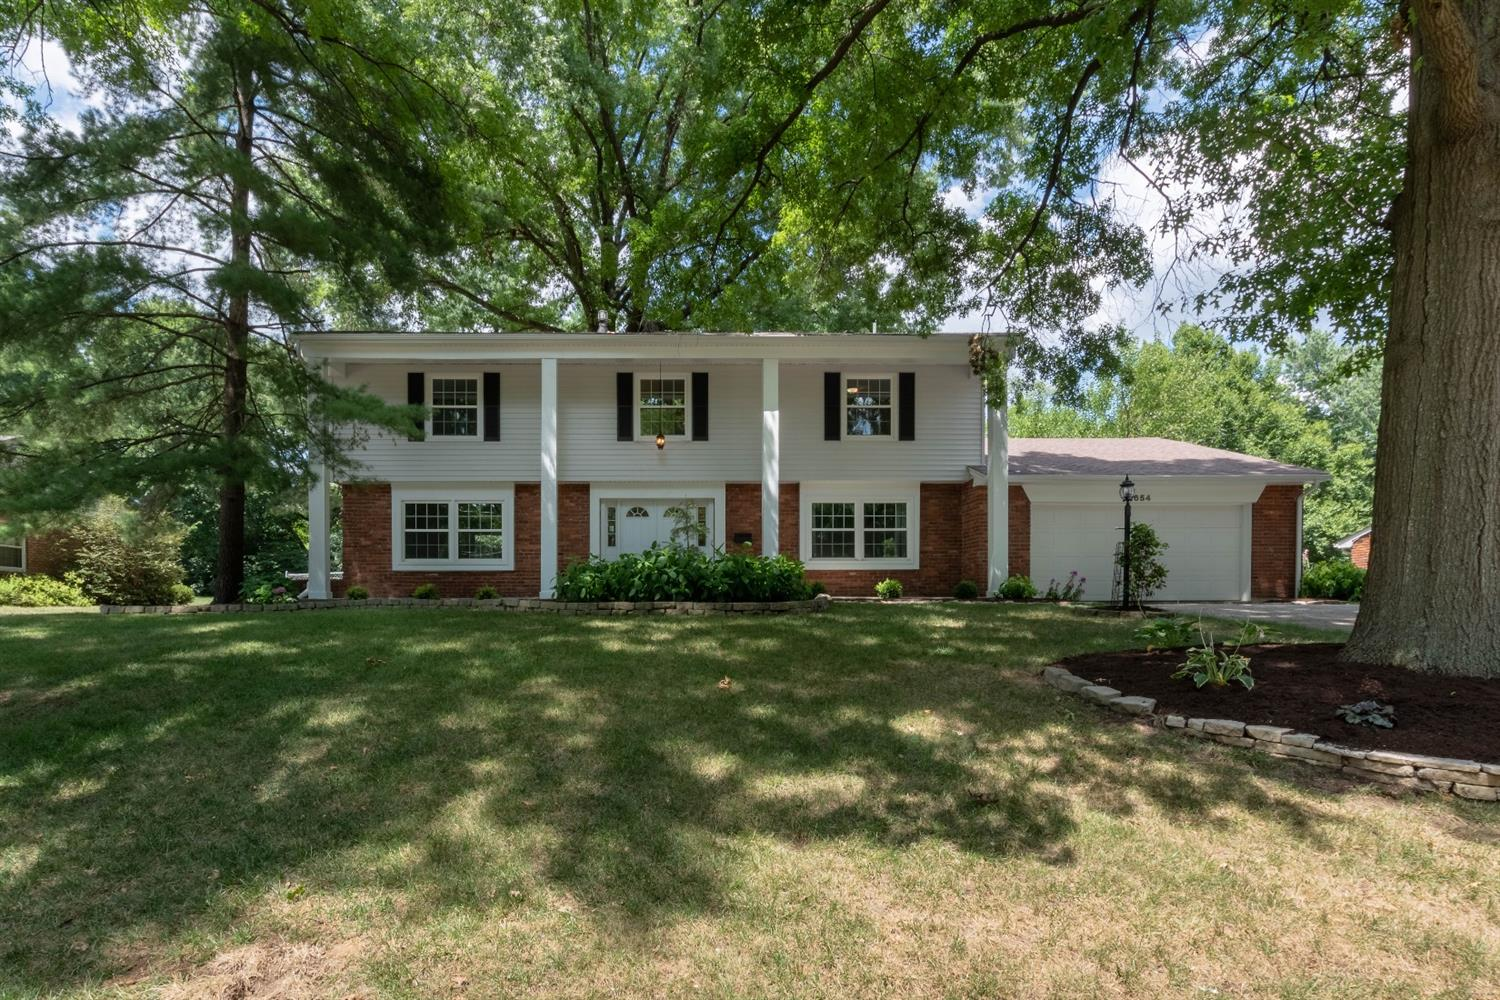 654 Flagstaff Dr Wyoming, OH